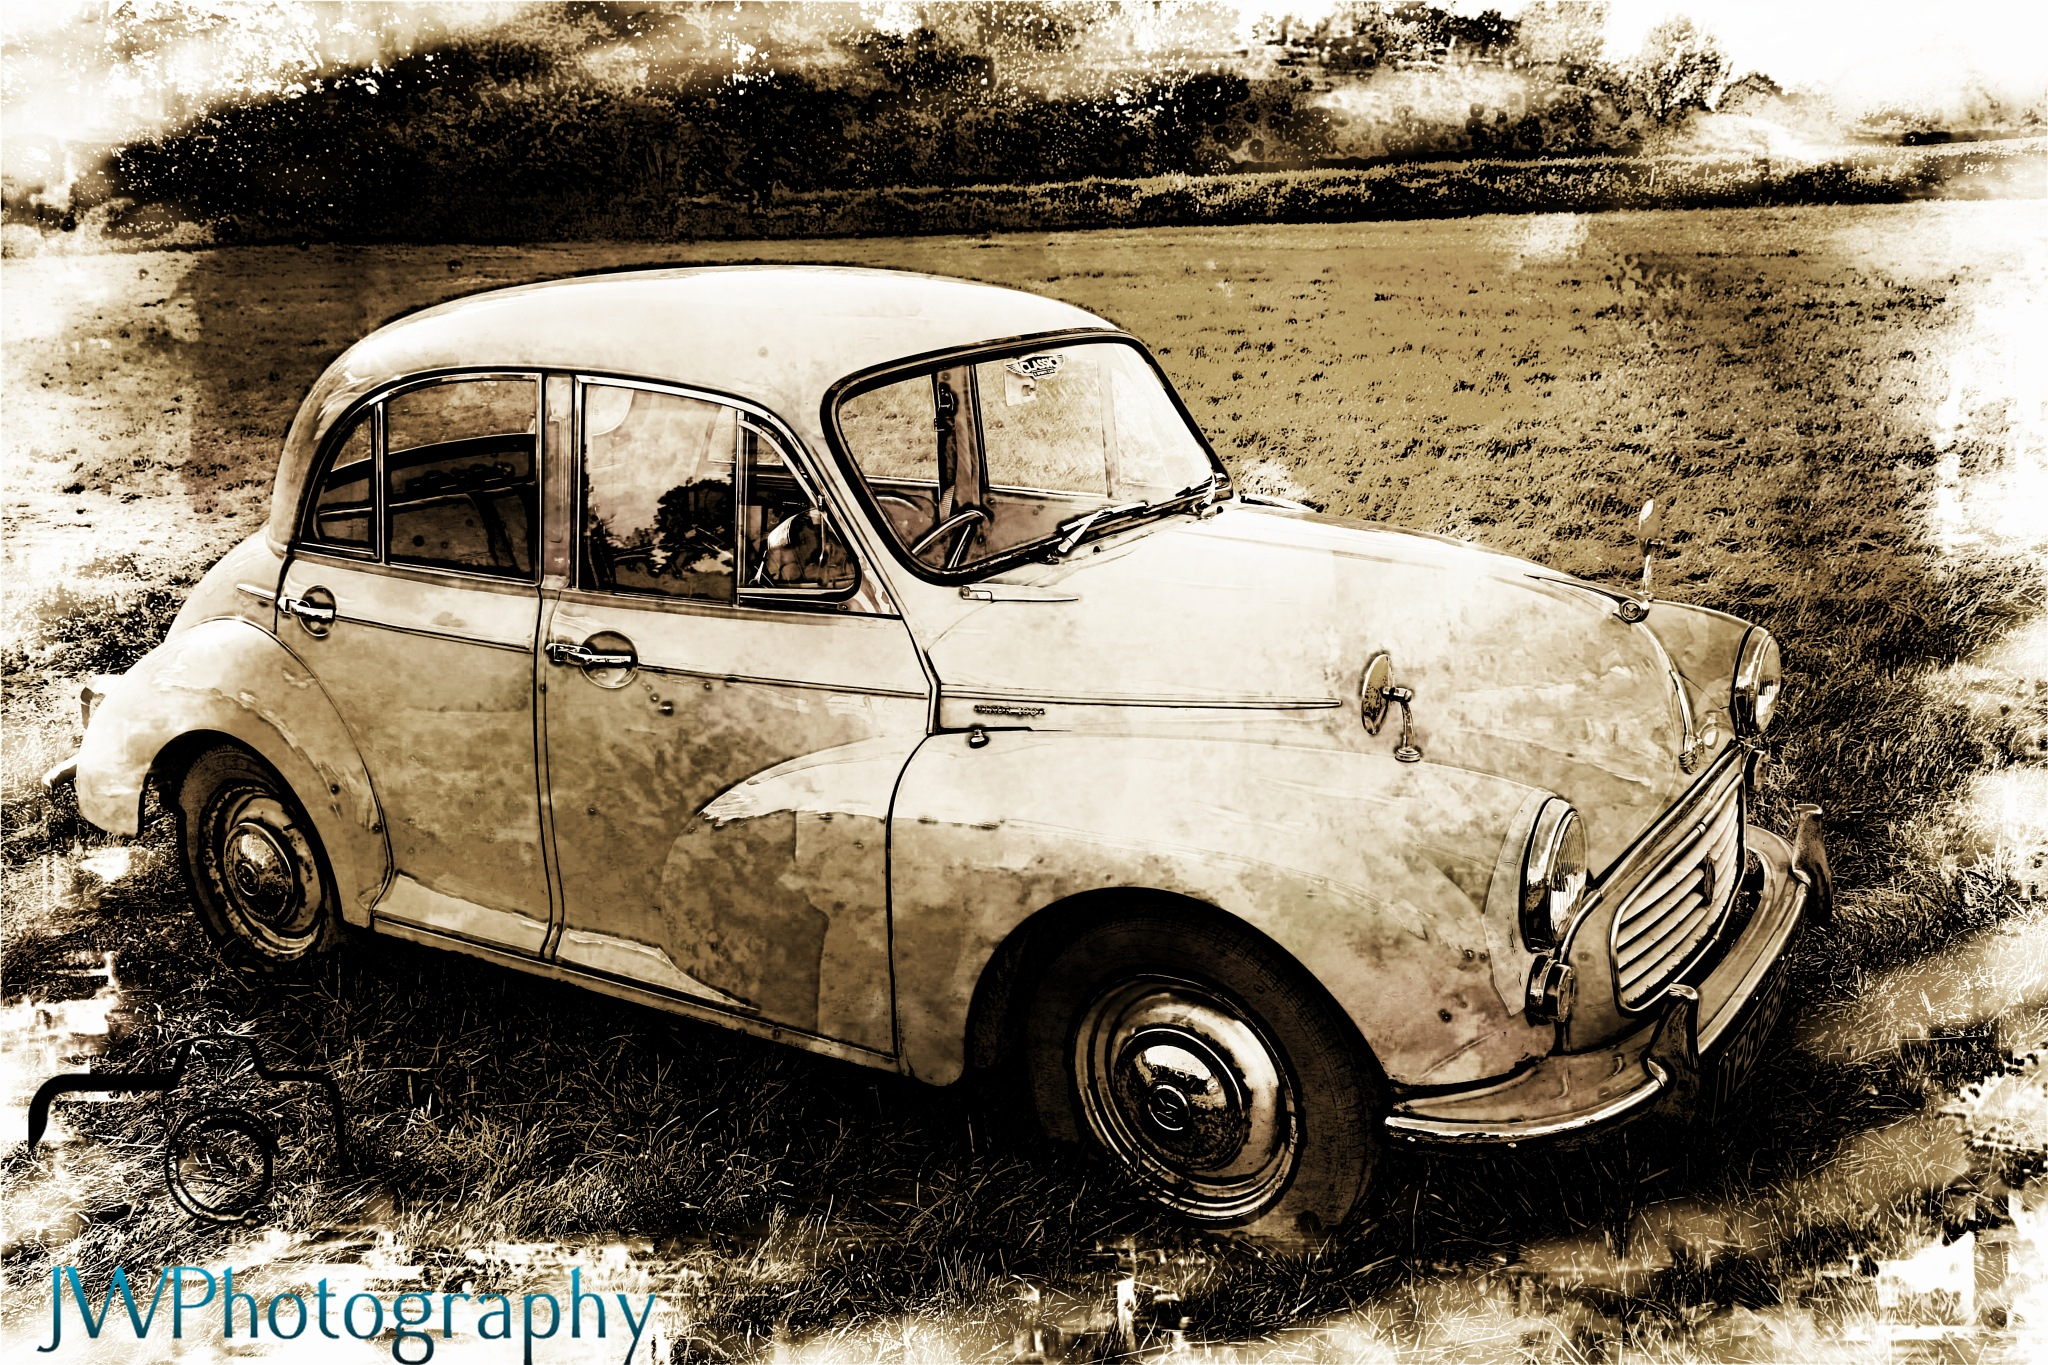 Morris Minor by                JWPhotography